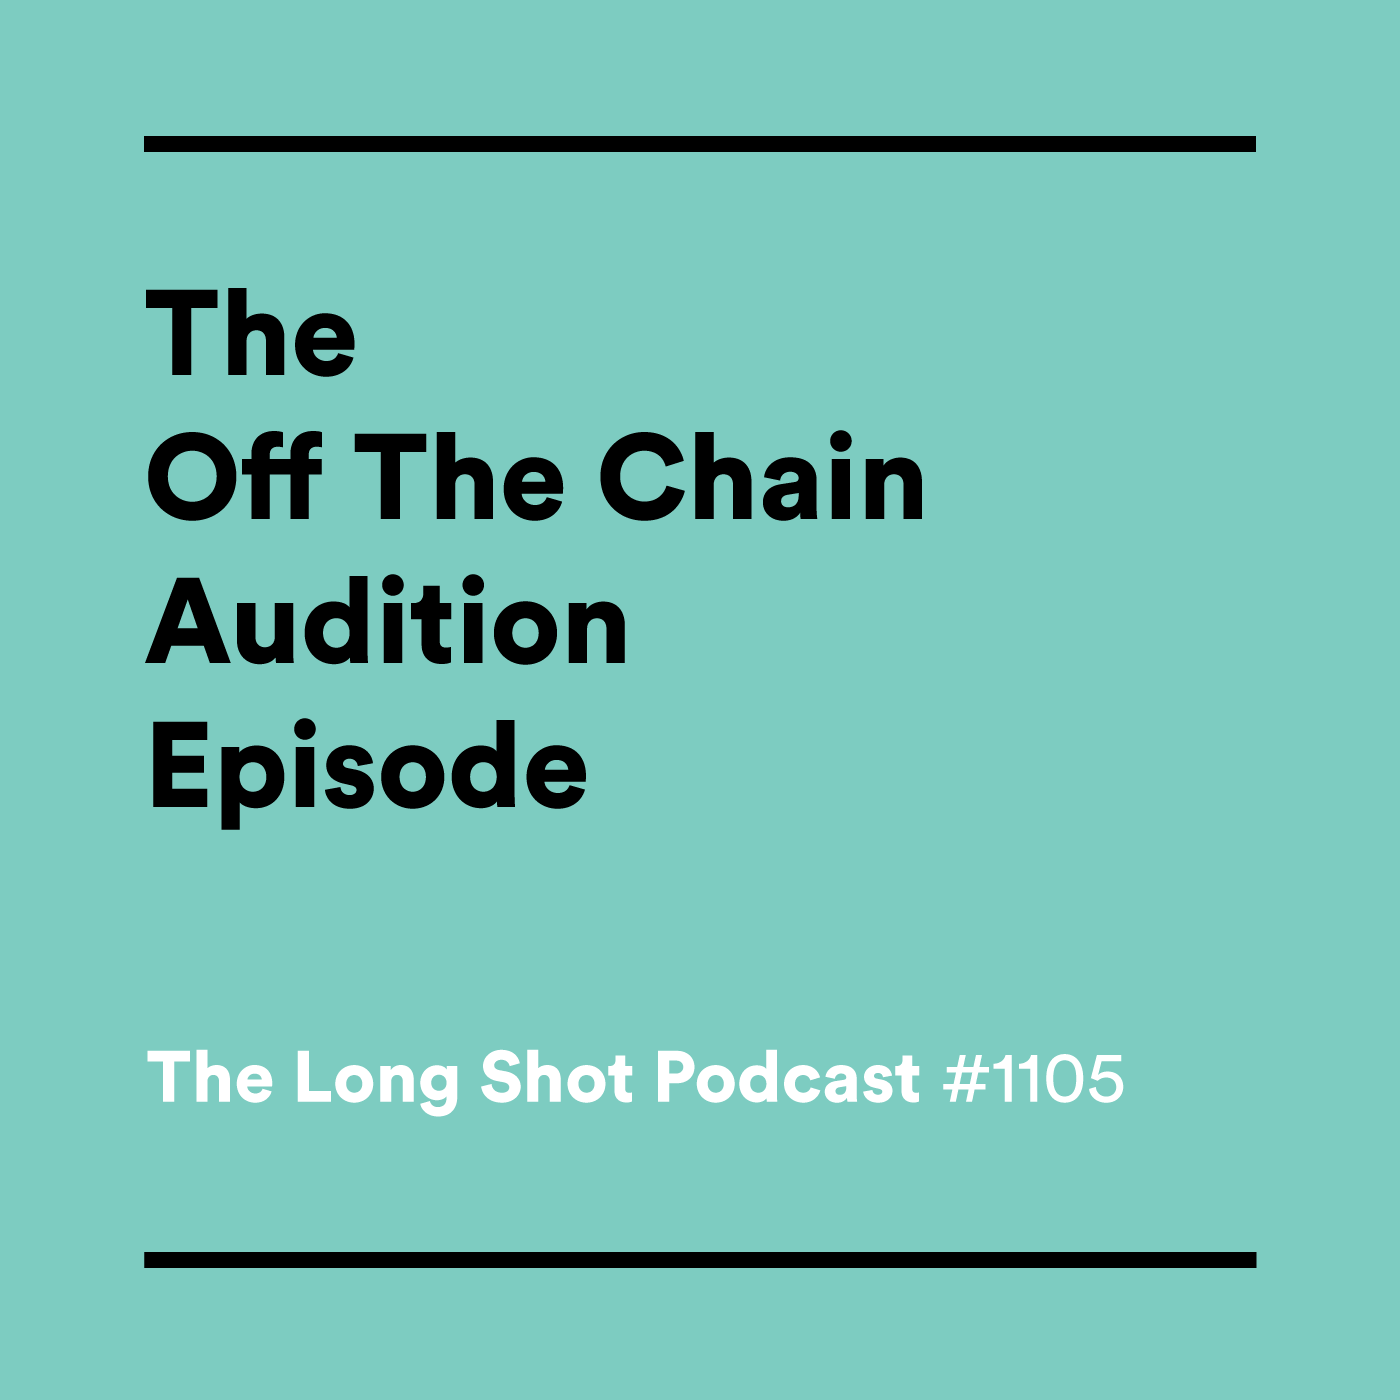 #1105 The Off The Chain Audition Episode with Jen Kirkman